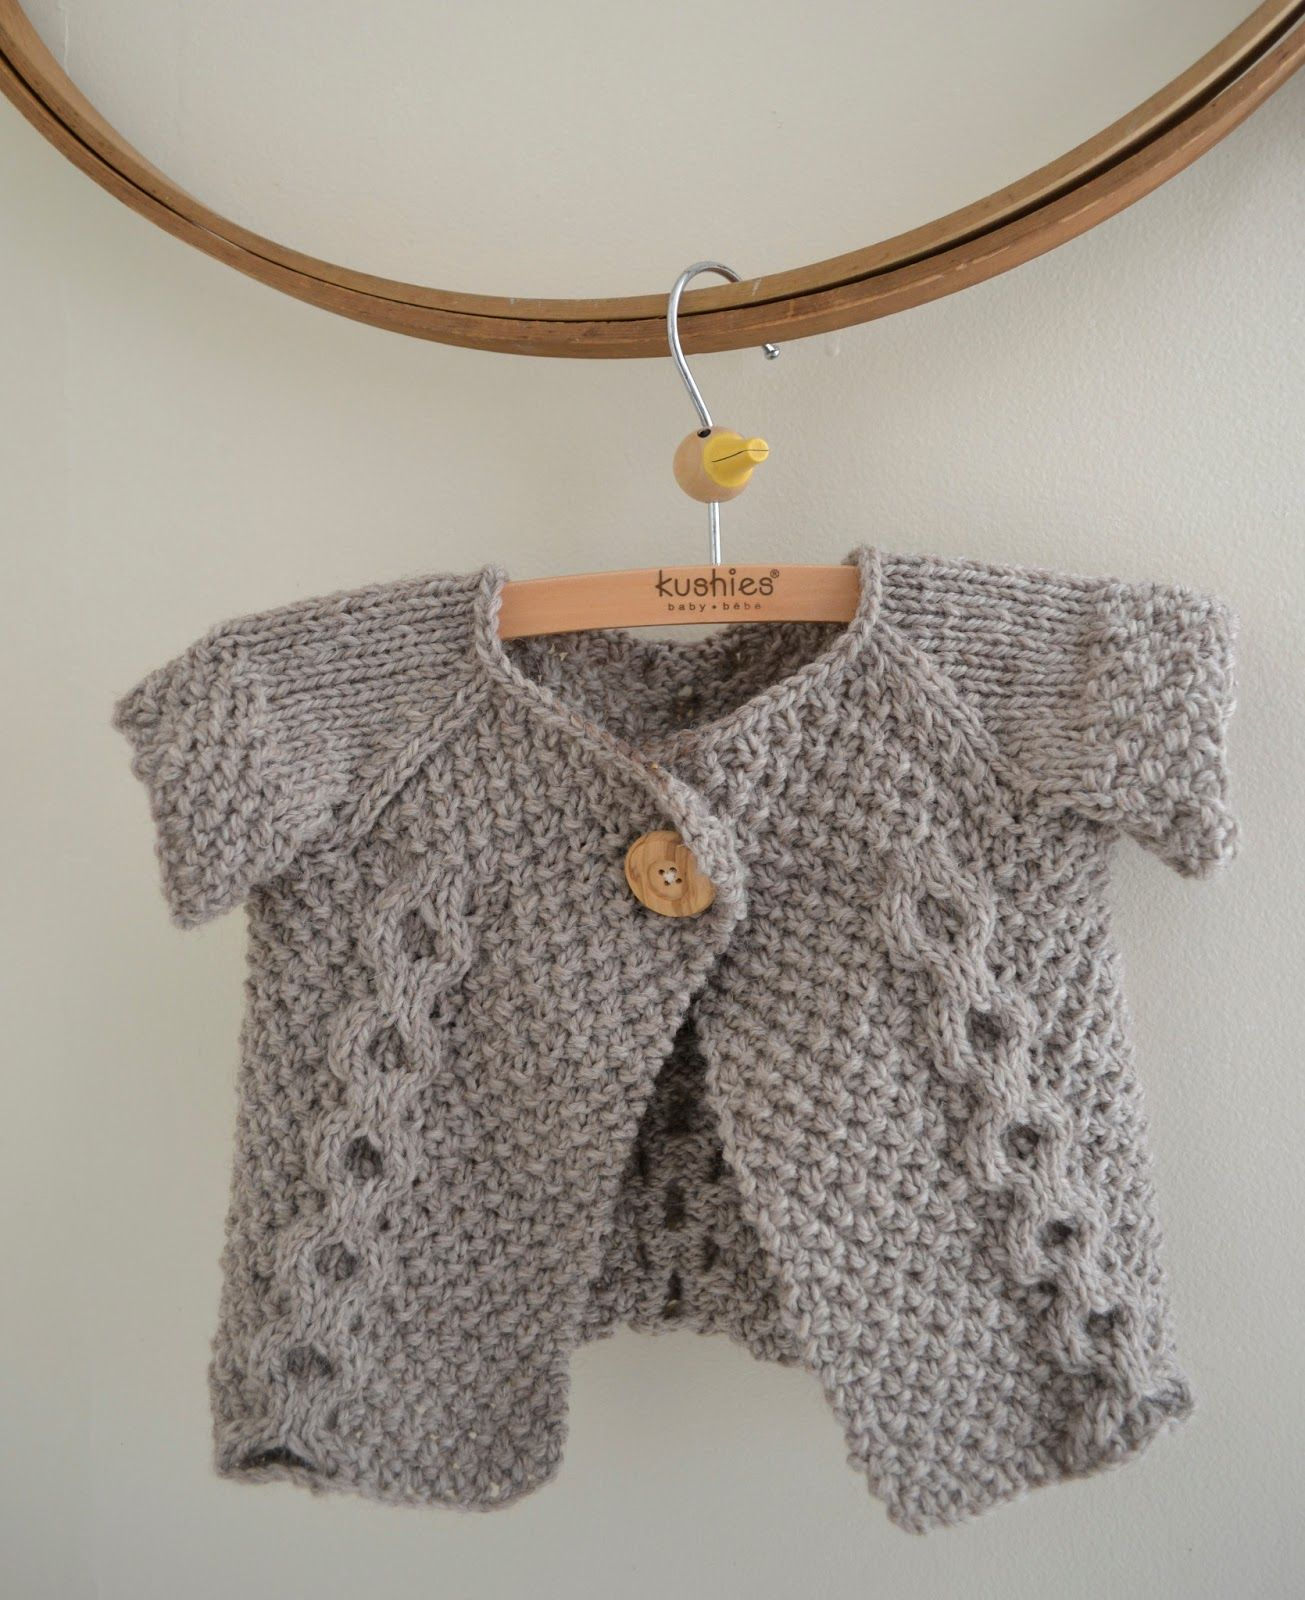 Knitted Jersey Patterns : Top 10 Amazing Knitting Patterns Baby sweaters, Free pattern and Patterns